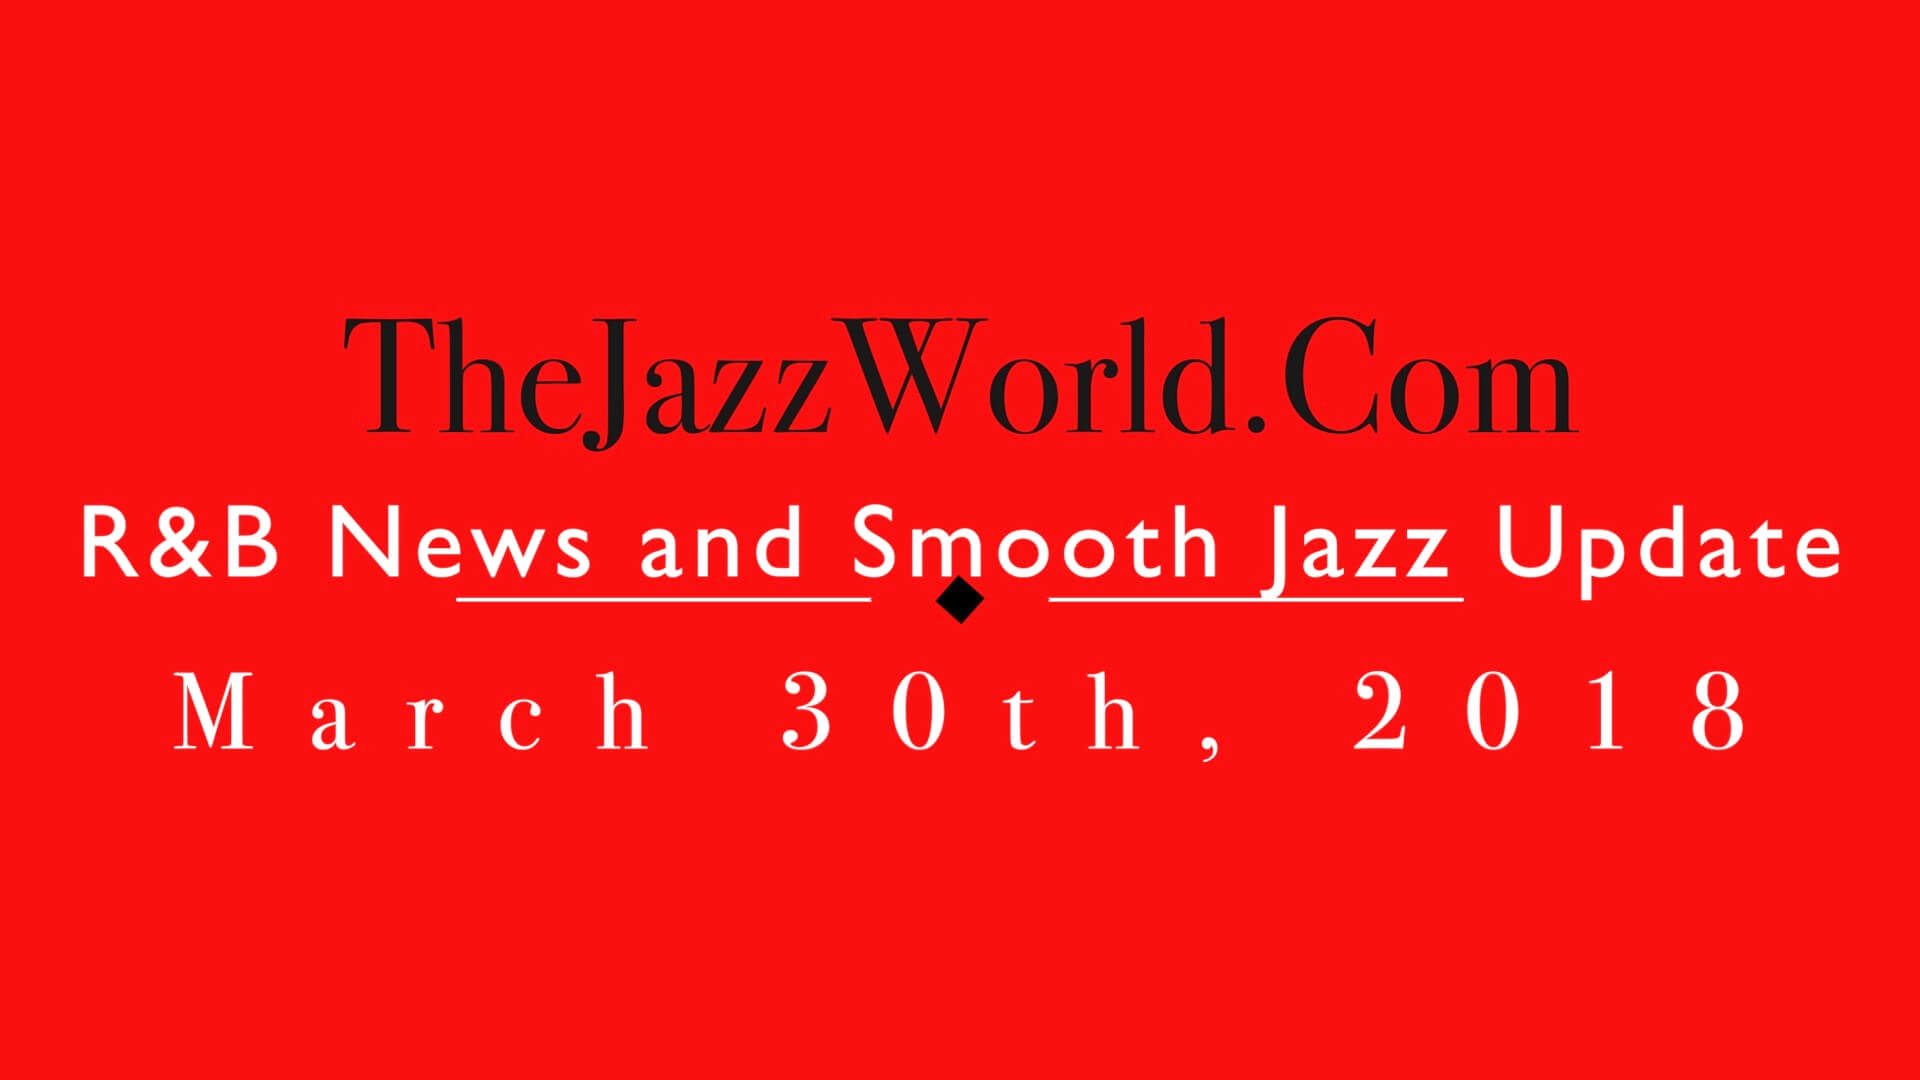 Latest R&B News and Smooth Jazz Update March 30th